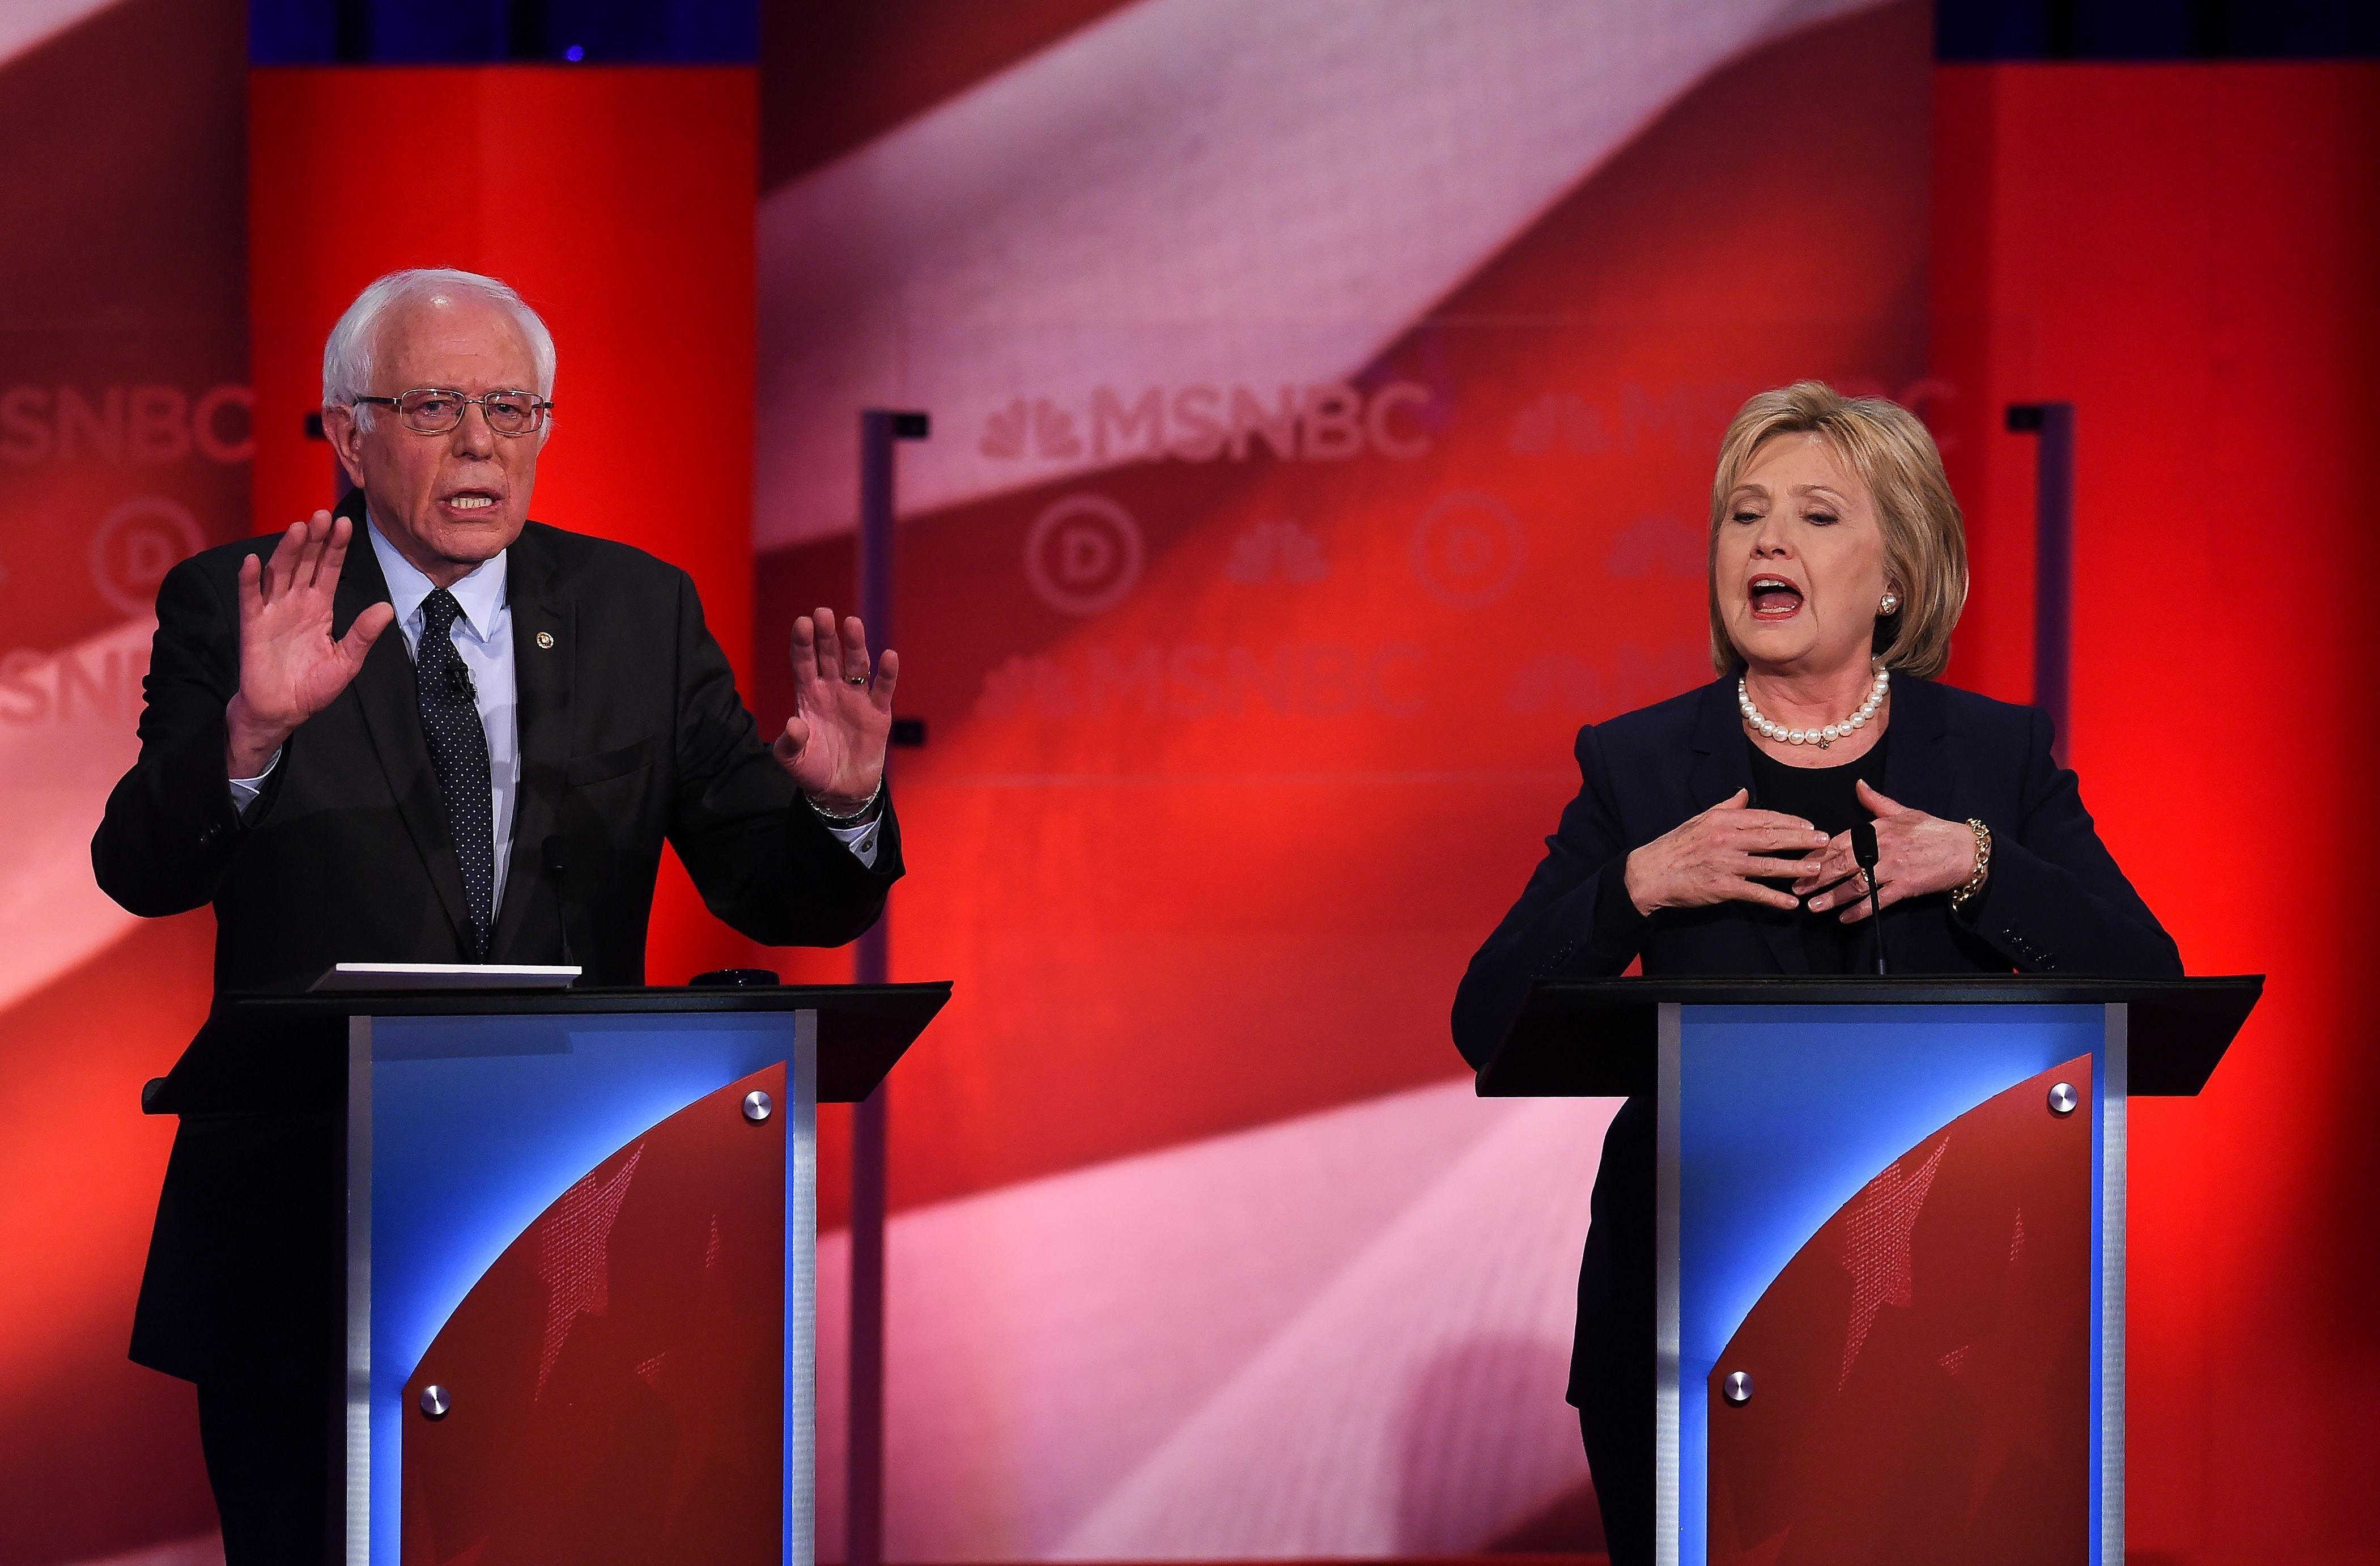 US Democratic presidential candidates Hillary Clinton (R) and Bernie Sanders participate in the MSNBC Democratic Candidates Debate at the University of New Hampshire in Durham on February 4, 2016.  Clinton and Sanders face off on February 4, in the first debate since their bruising Iowa clash that the former secretary of state won by a hair, as they gear for a battle royale in New Hampshire. / AFP / Jewel Samad        (Photo credit should read JEWEL SAMAD/AFP/Getty Images)